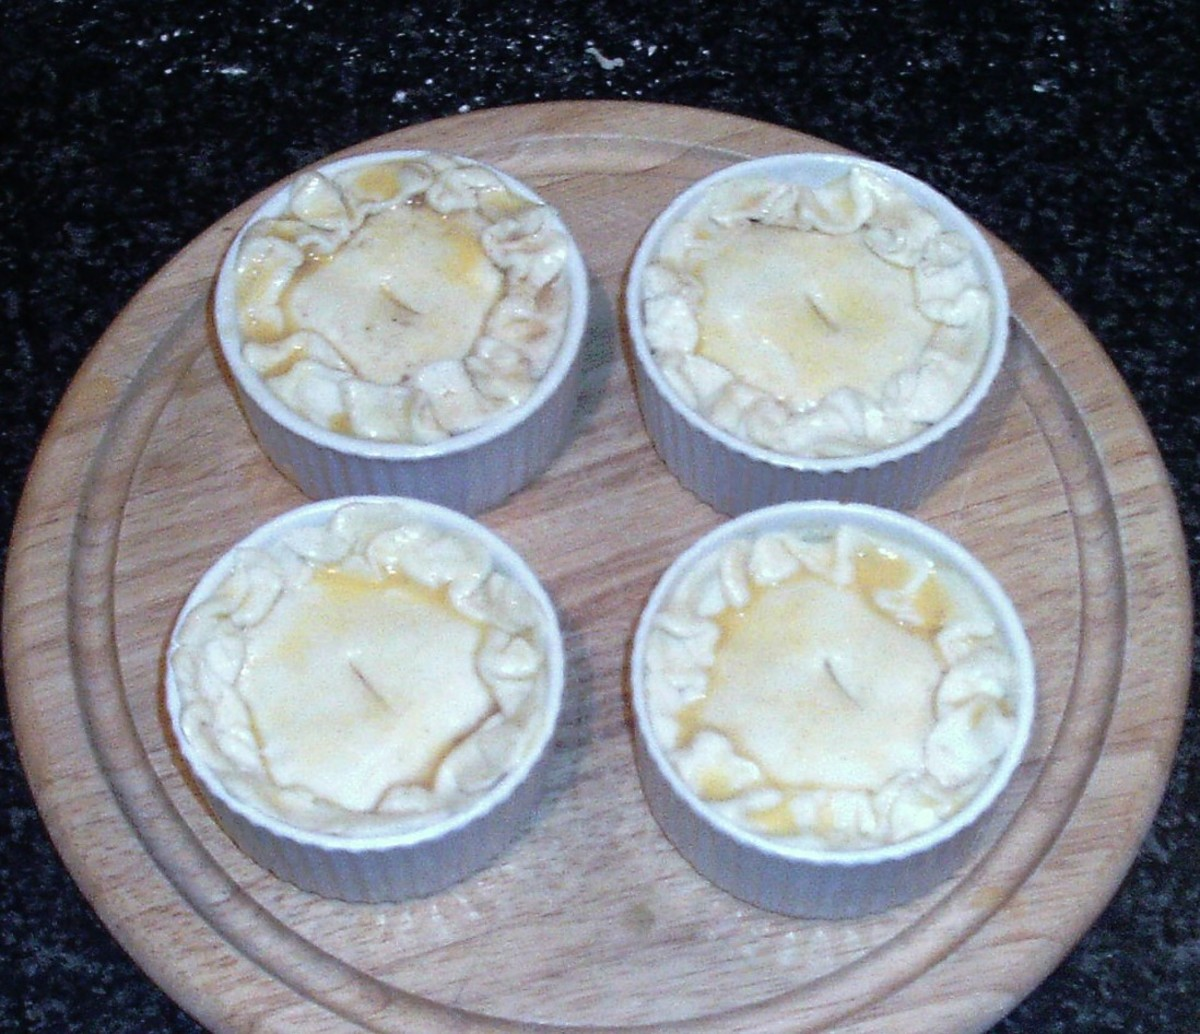 Assembled and glazed pies are ready for the oven